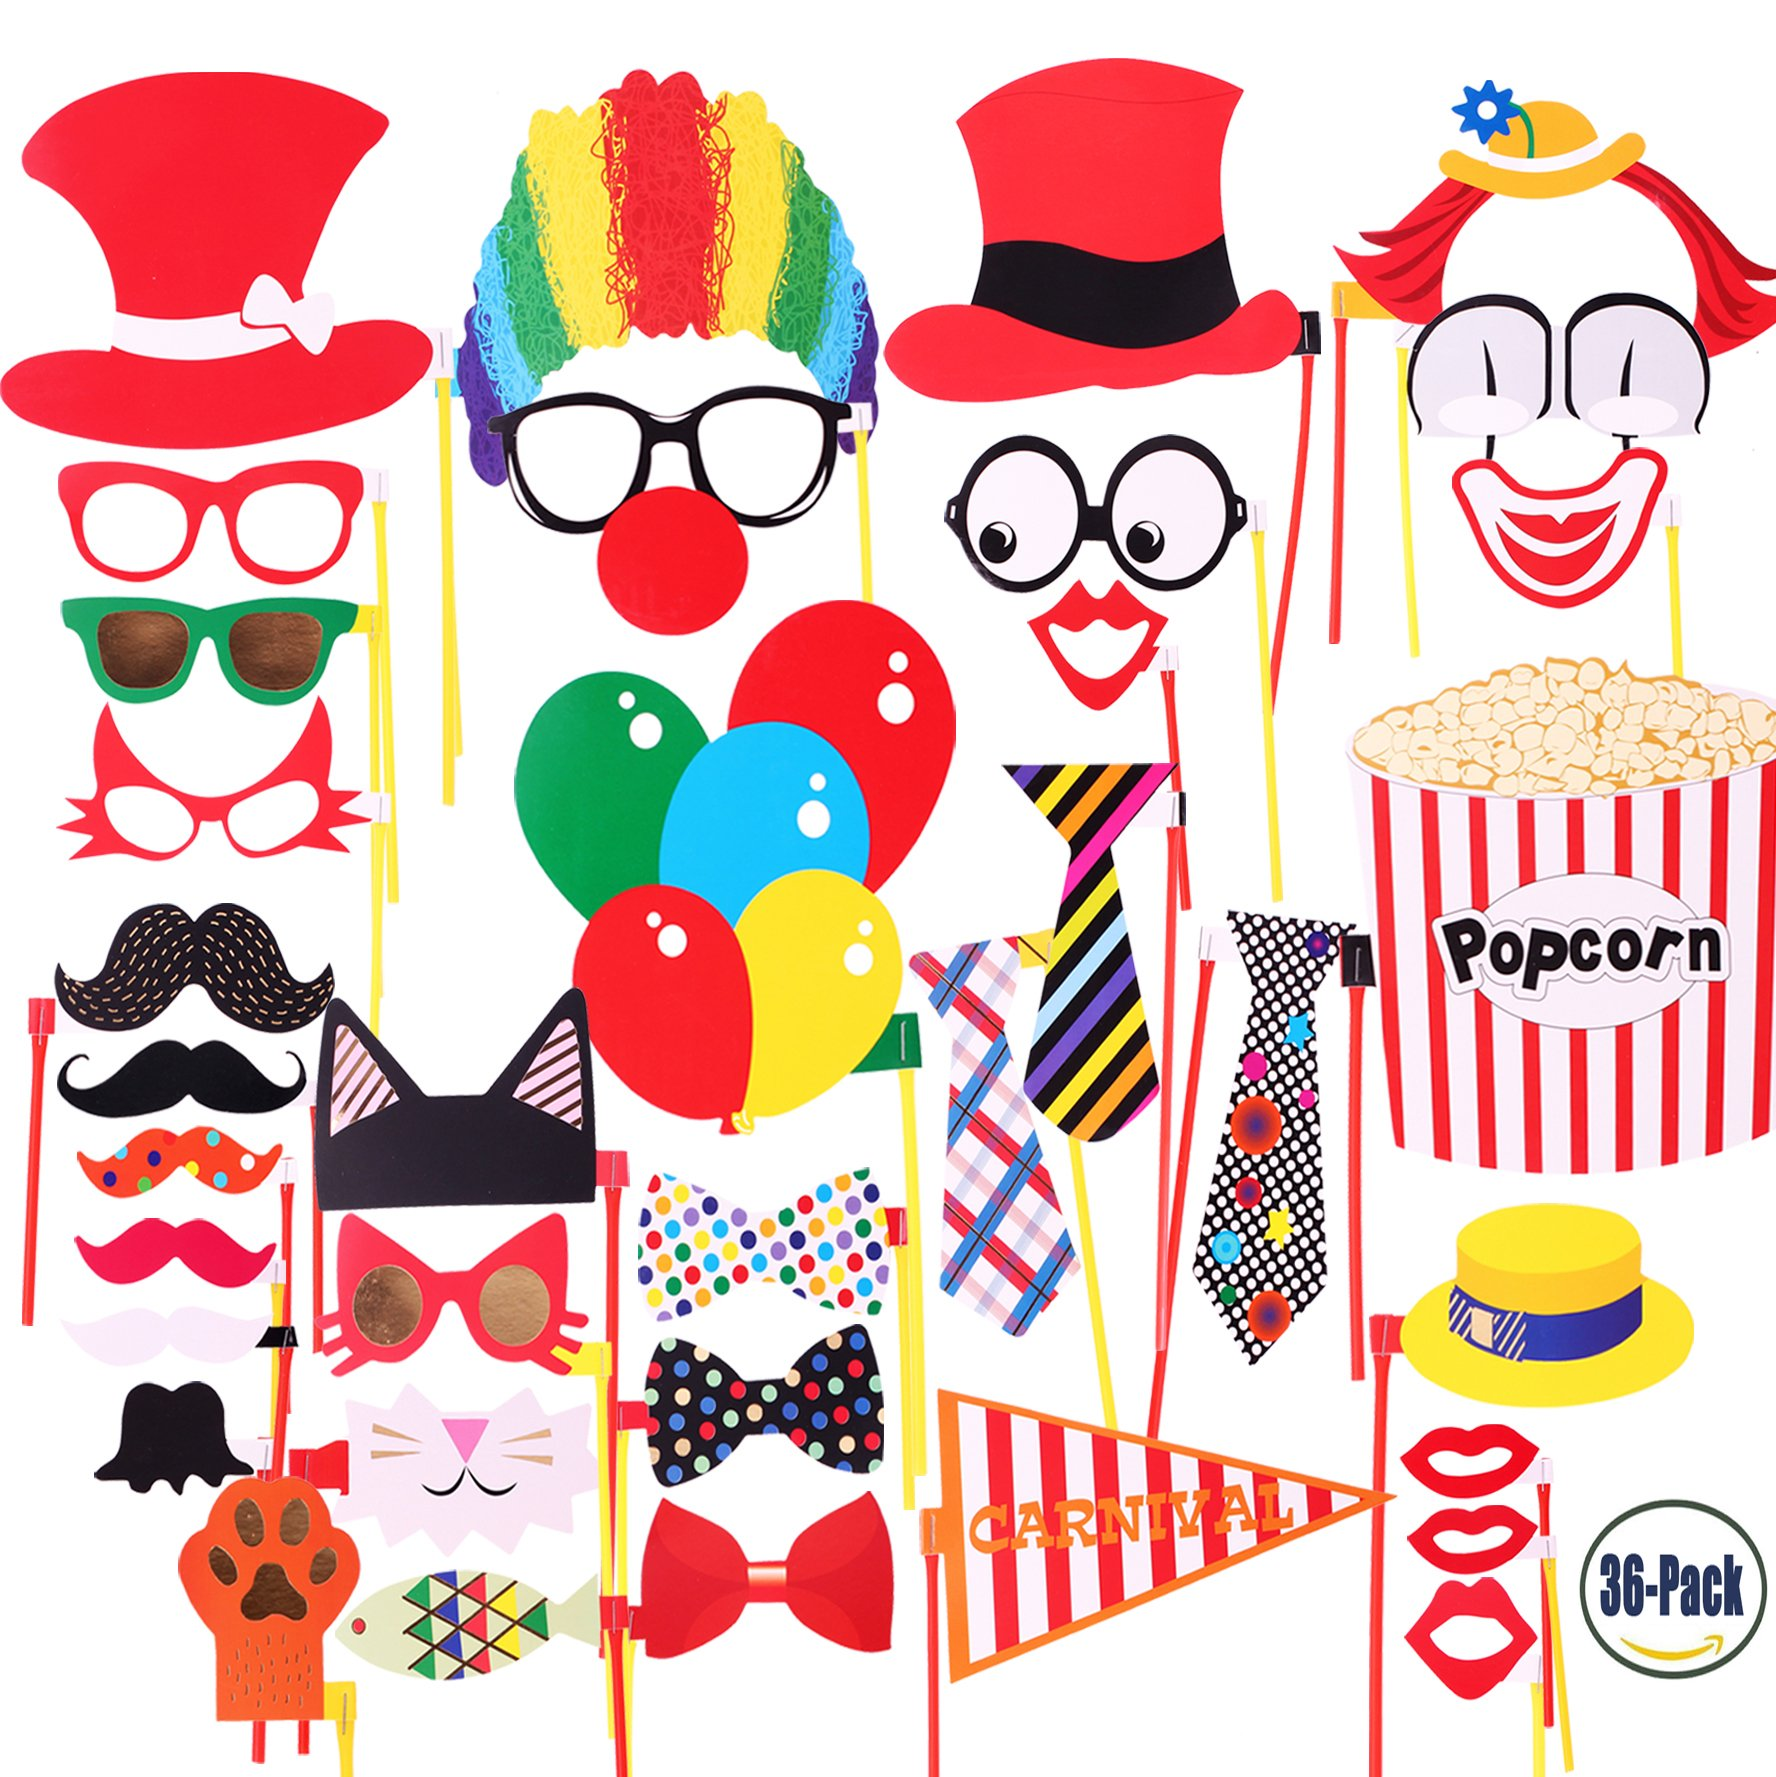 Attached Photo Booth Props, COOLOO Party Favors for Wedding Birthday Carnival Bachelorette Dress-up Acessories 36 Pcs, Costume with Mustache, Glasses, Cat, Clown, Bowler, Bowties on Plastic Sticks